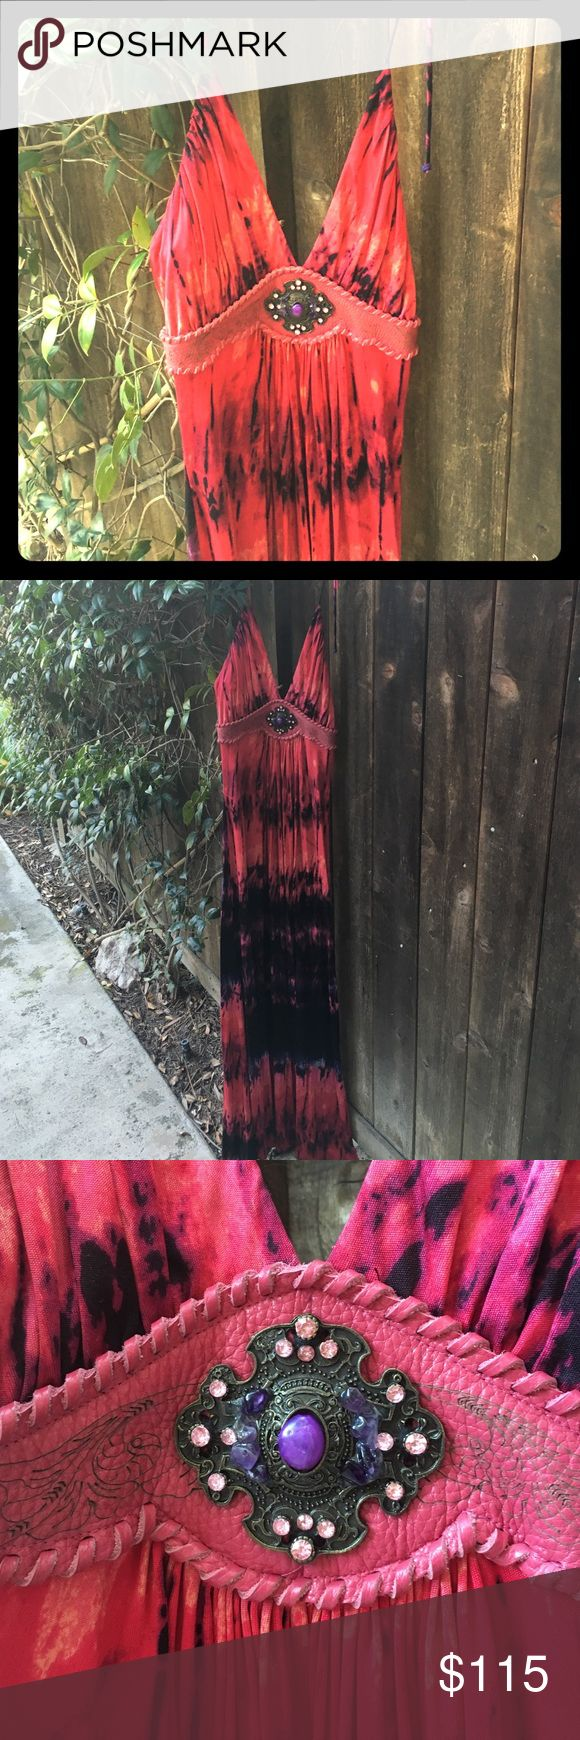 Sky maxi tie dye leather stones long dress M Fantastic dress in excellent condition. Tie dye boho maxi dress. Shoulder tie halter Style. Size M. Please take a look at my other Sky listings for an awesome bundle discount:) Sky Dresses Maxi